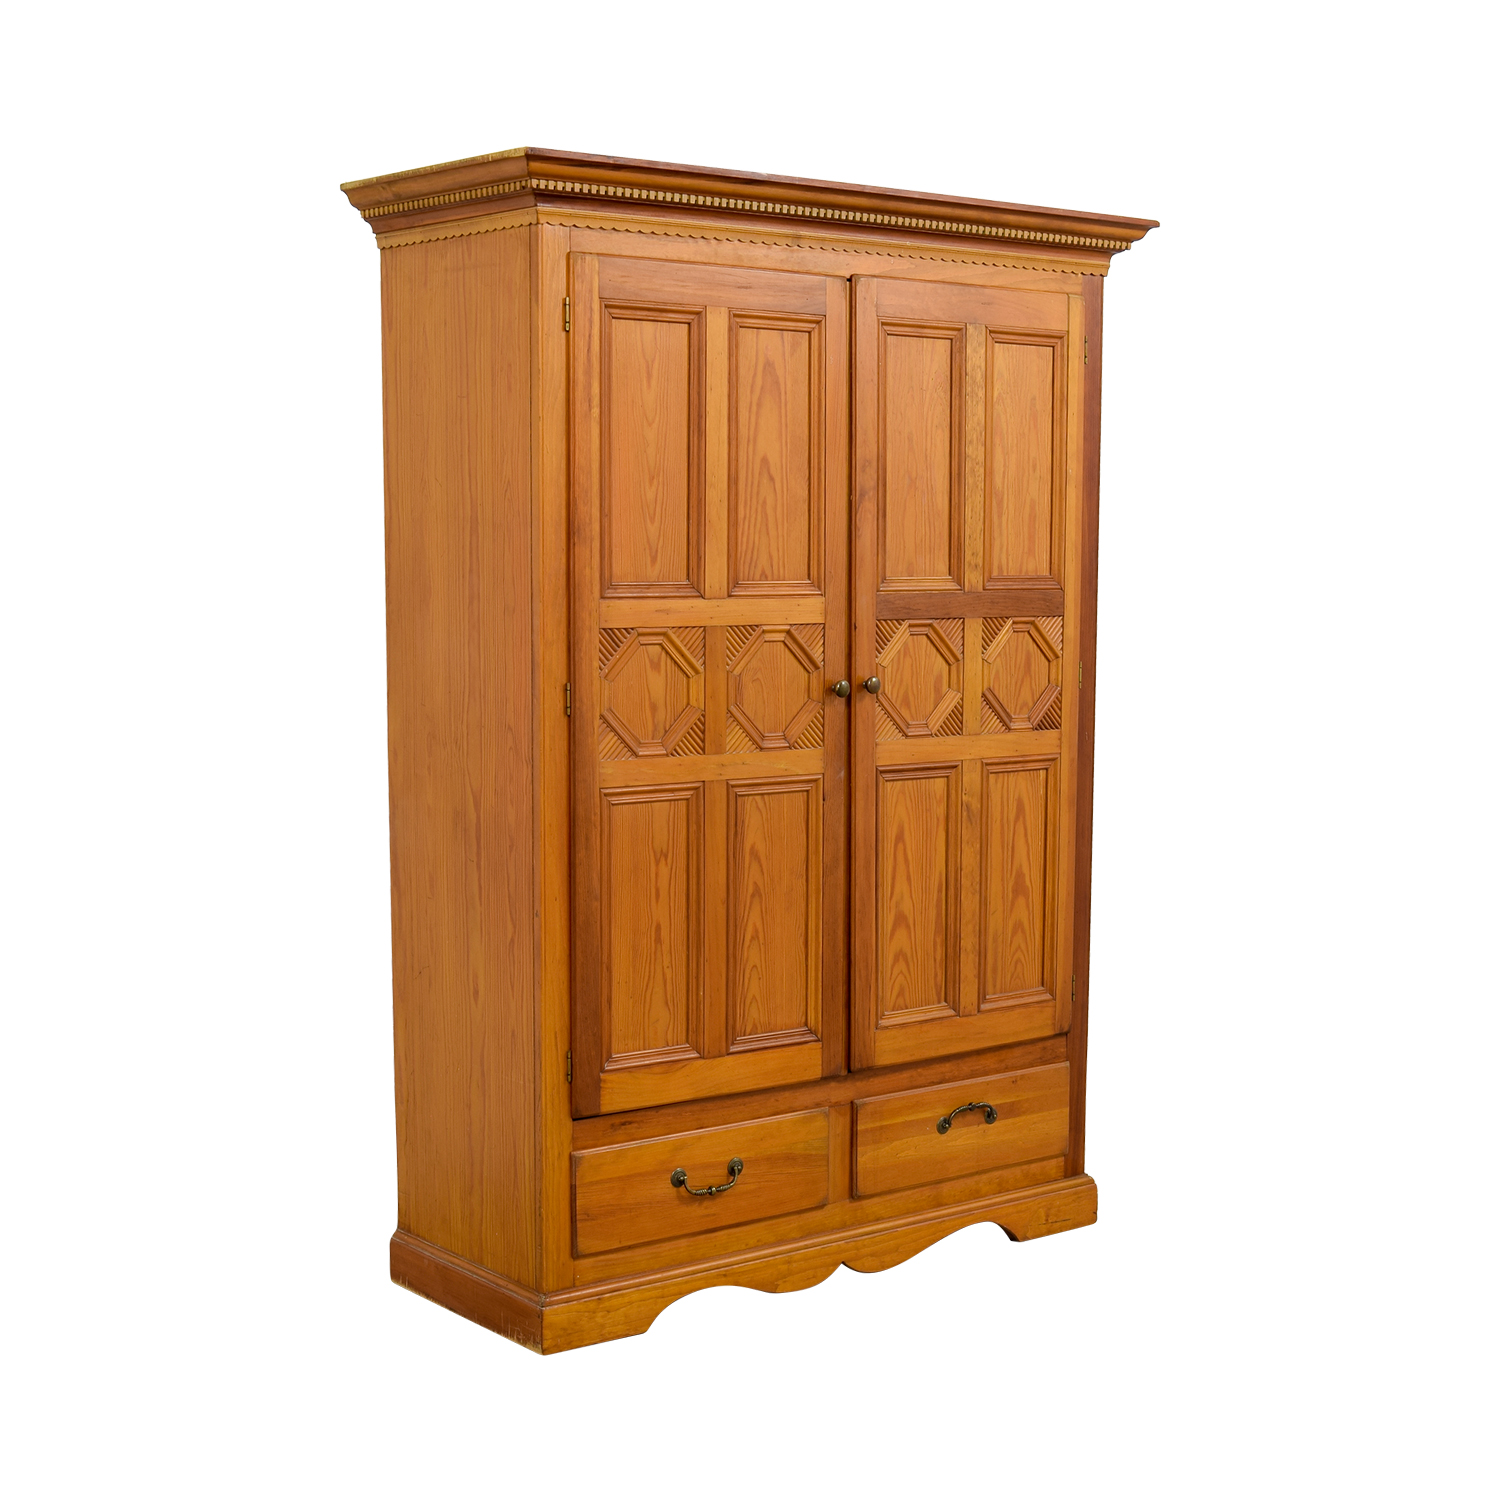 Lexington Weekend Retreat Lexington Weekend Retreat TV Armoire on sale